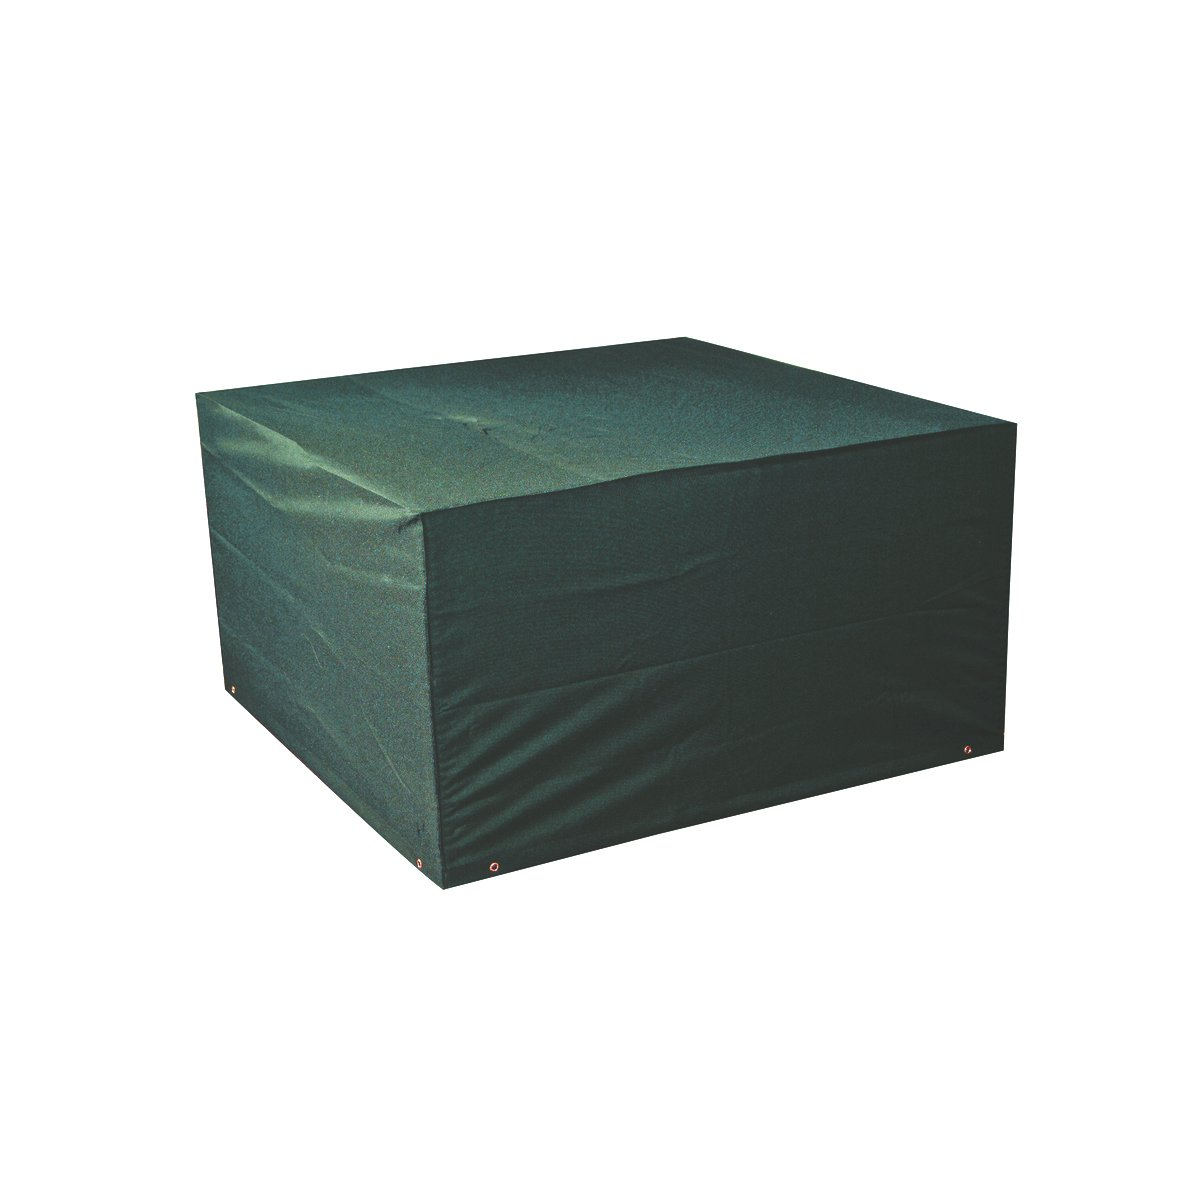 Amazon com   Bosmere C772 Square Fire Pit Cover  45  x 45  x 20   Green    Garden   Outdoor. Amazon com   Bosmere C772 Square Fire Pit Cover  45  x 45  x 20